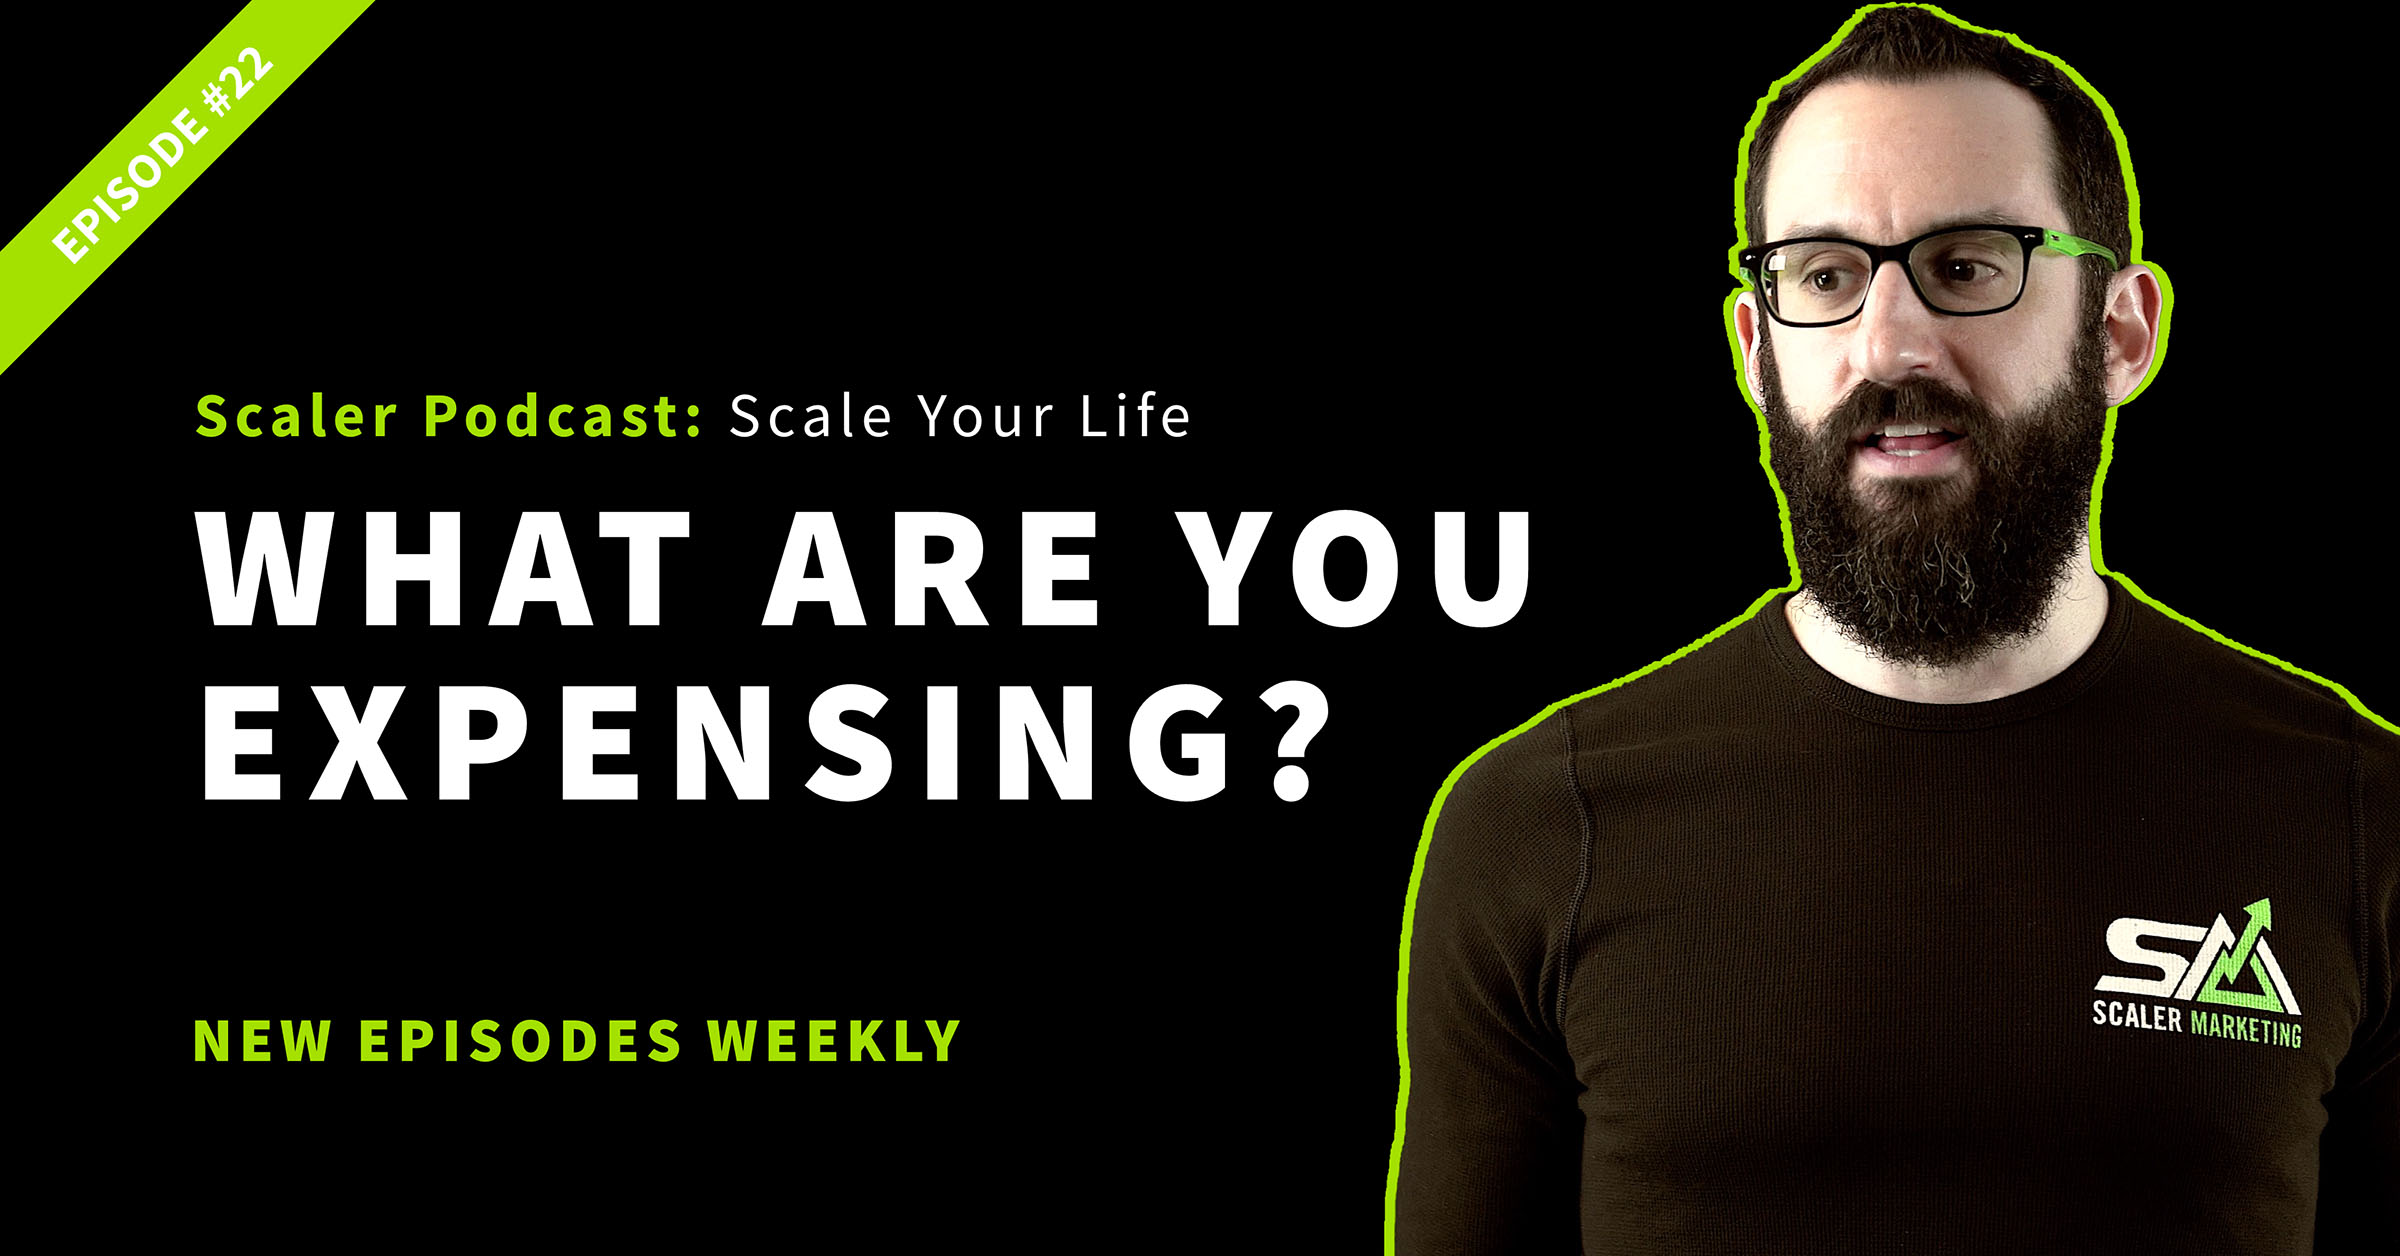 Episode 22 - What Are You Expensing?